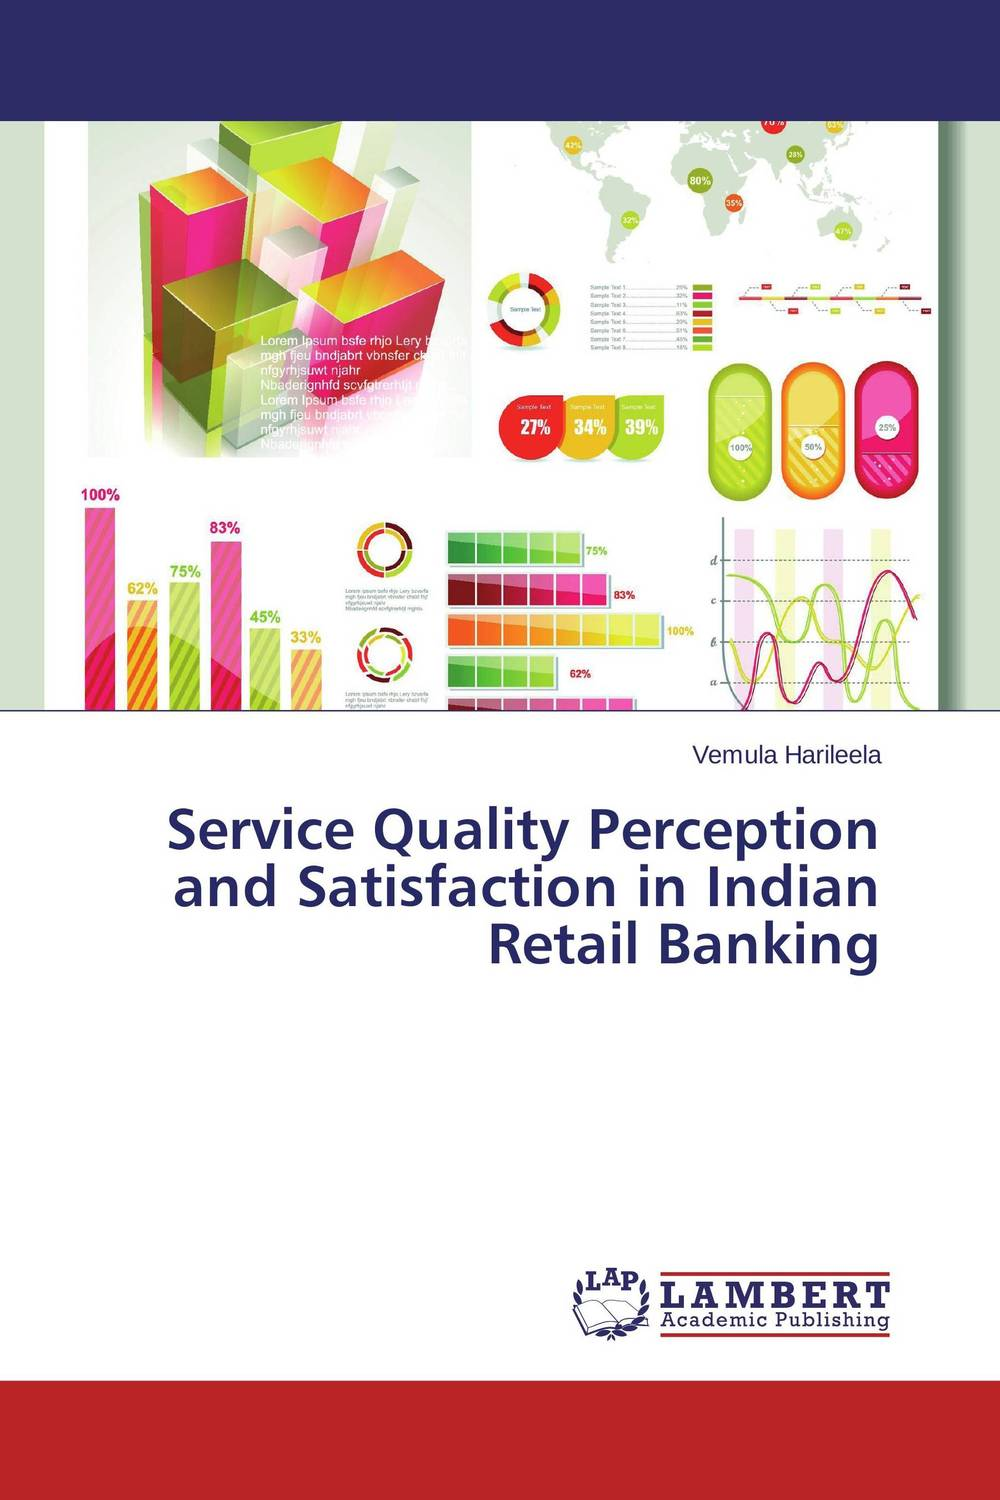 Service Quality Perception and Satisfaction in Indian Retail Banking michel chevalier luxury retail management how the world s top brands provide quality product and service support